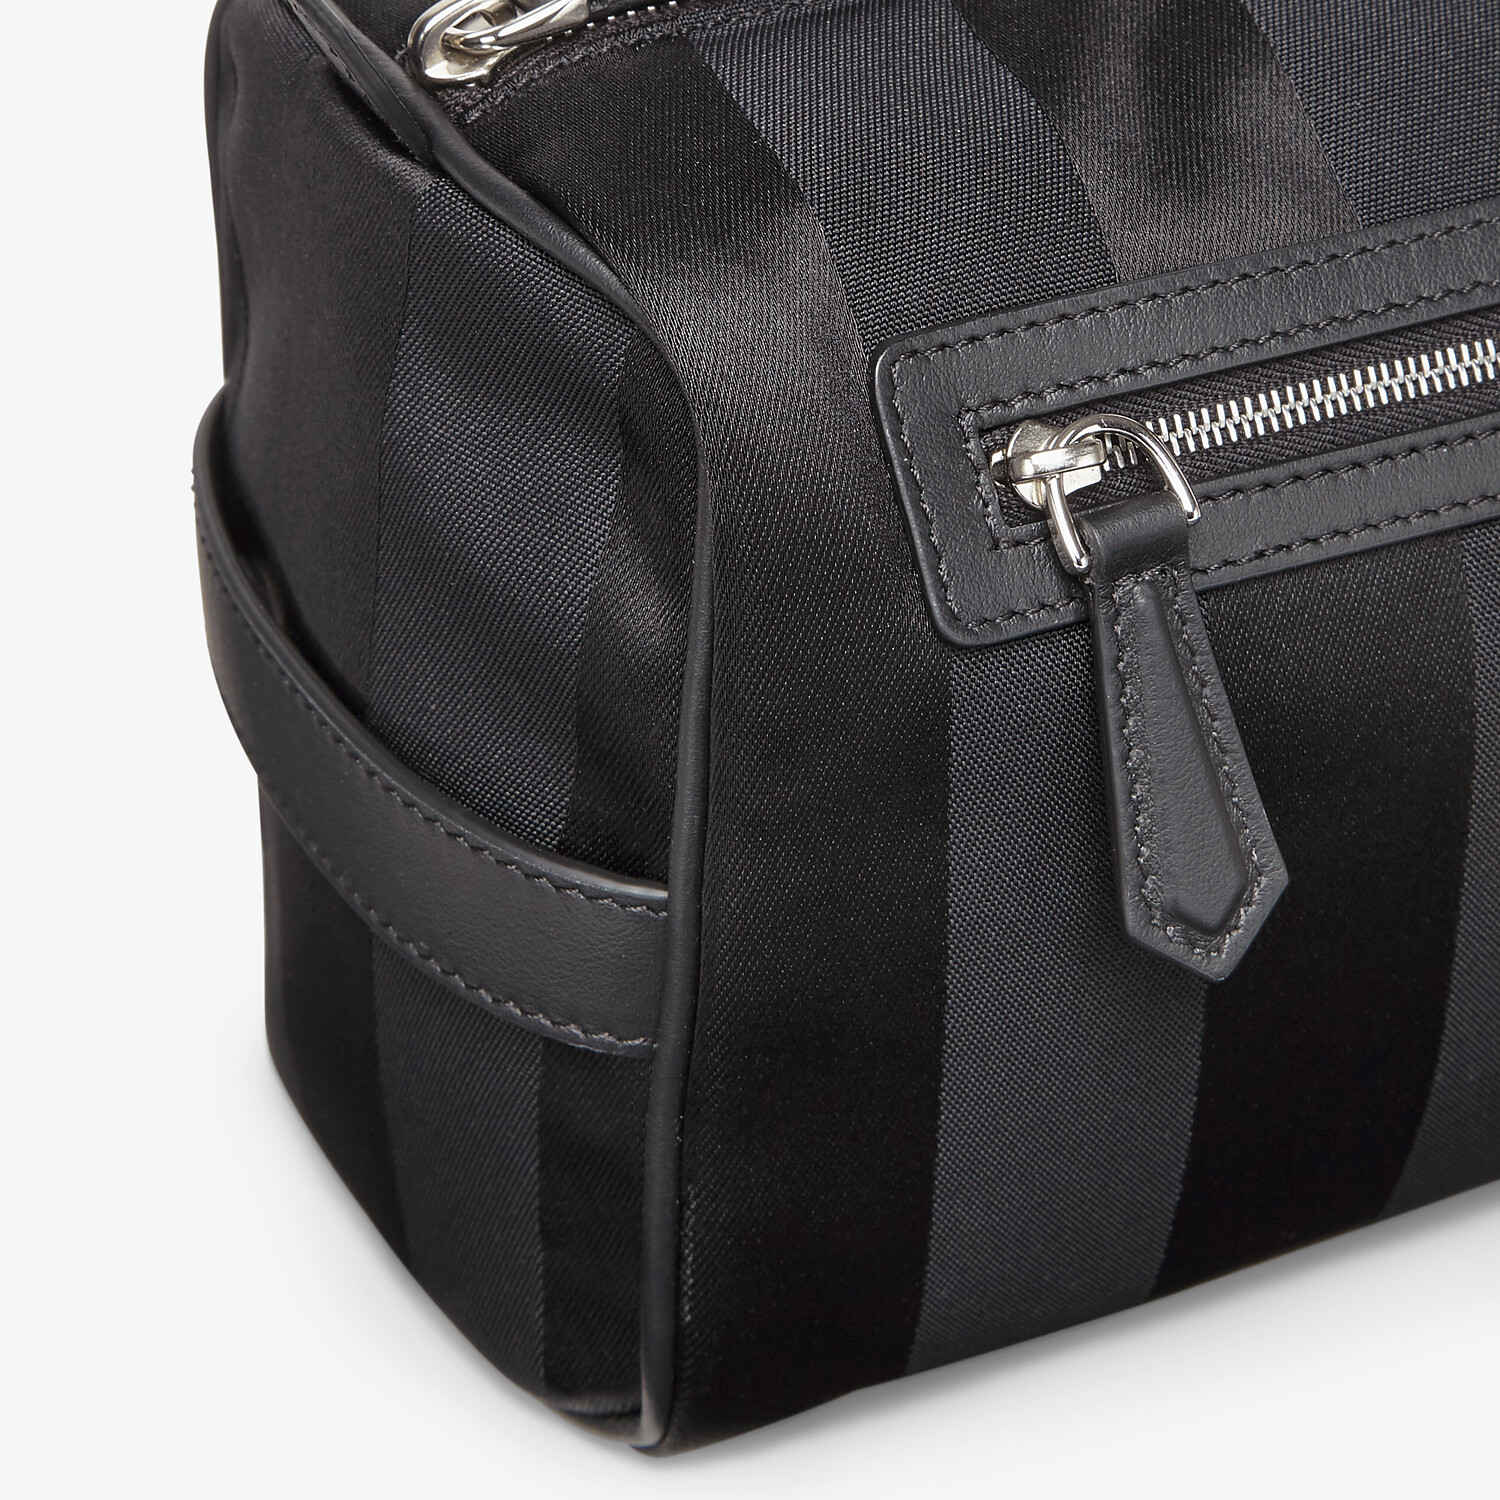 FENDI TOILETRY CASE - Black nylon toiletry case - view 5 detail